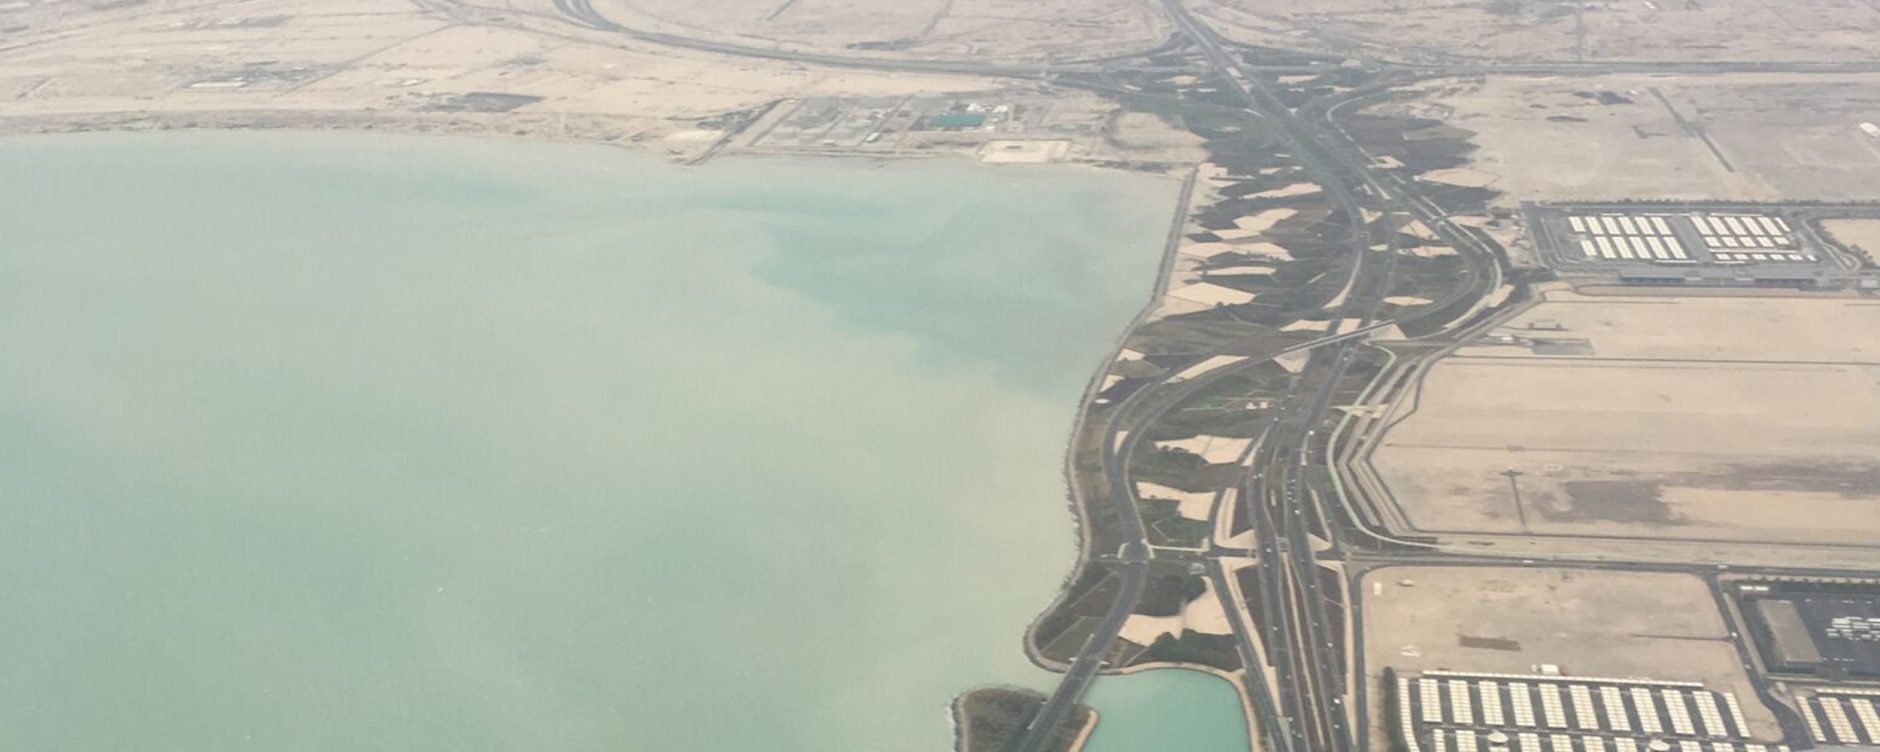 Edge landscapes, Doha International Airport. Photo © Dr. Anna Grichting.